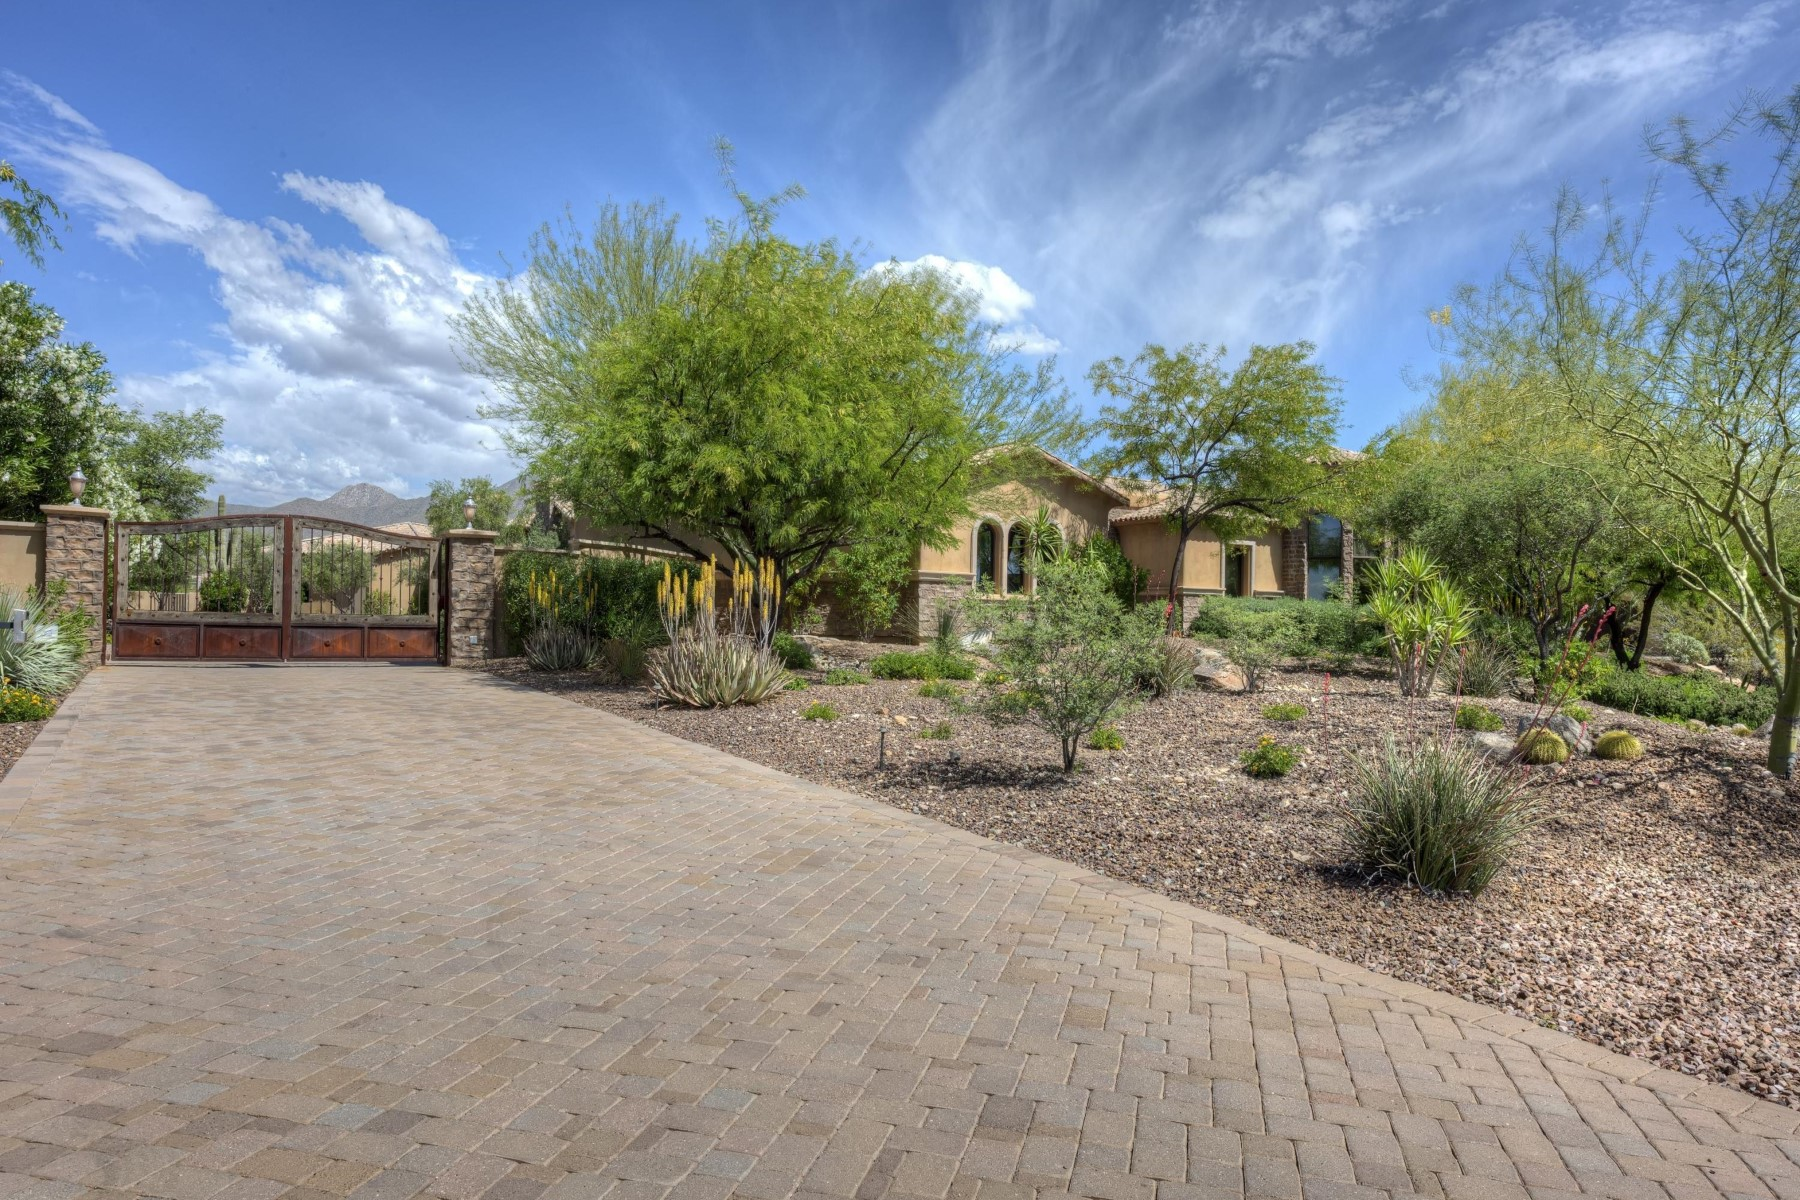 Single Family Home for Sale at True custom built luxury home in scottsdale 12686 E Gold Dust Ave Scottsdale, Arizona, 85259 United States